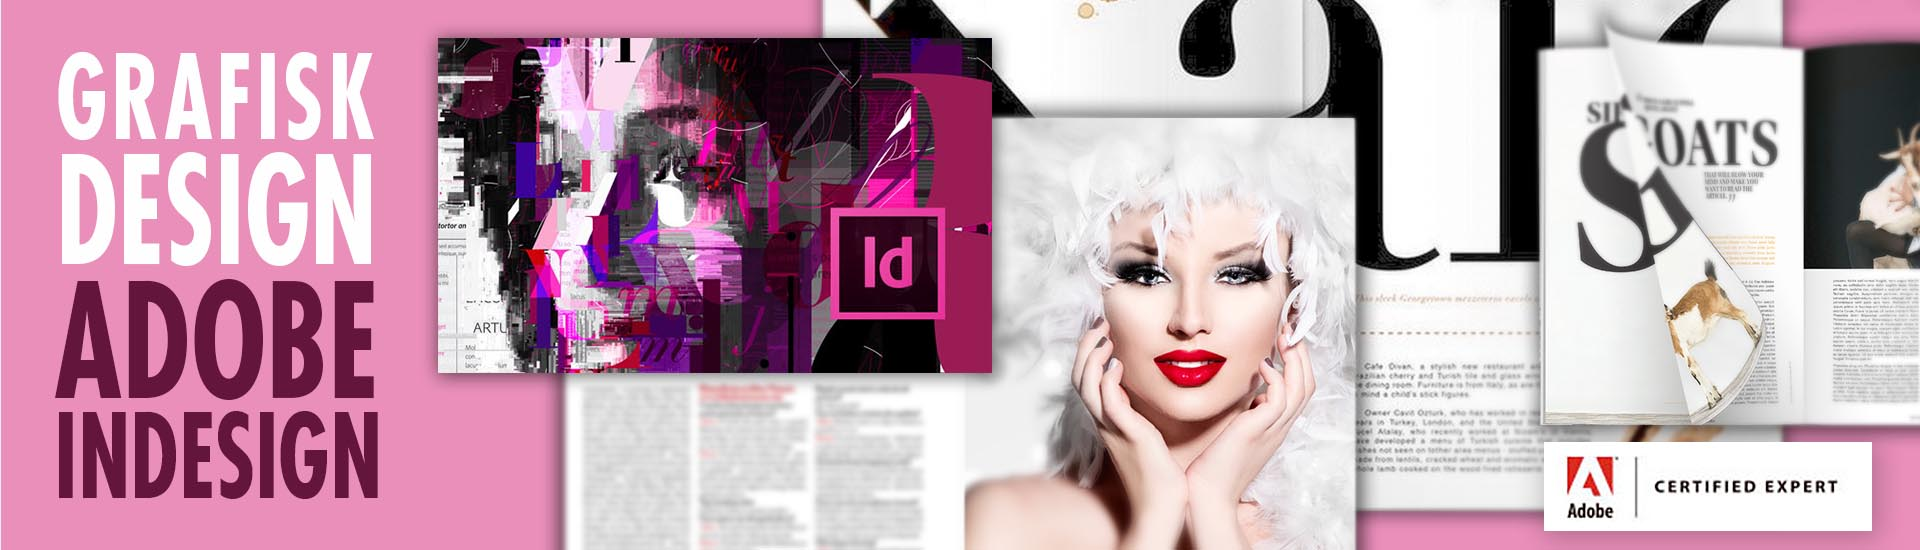 Indesign kurs logo